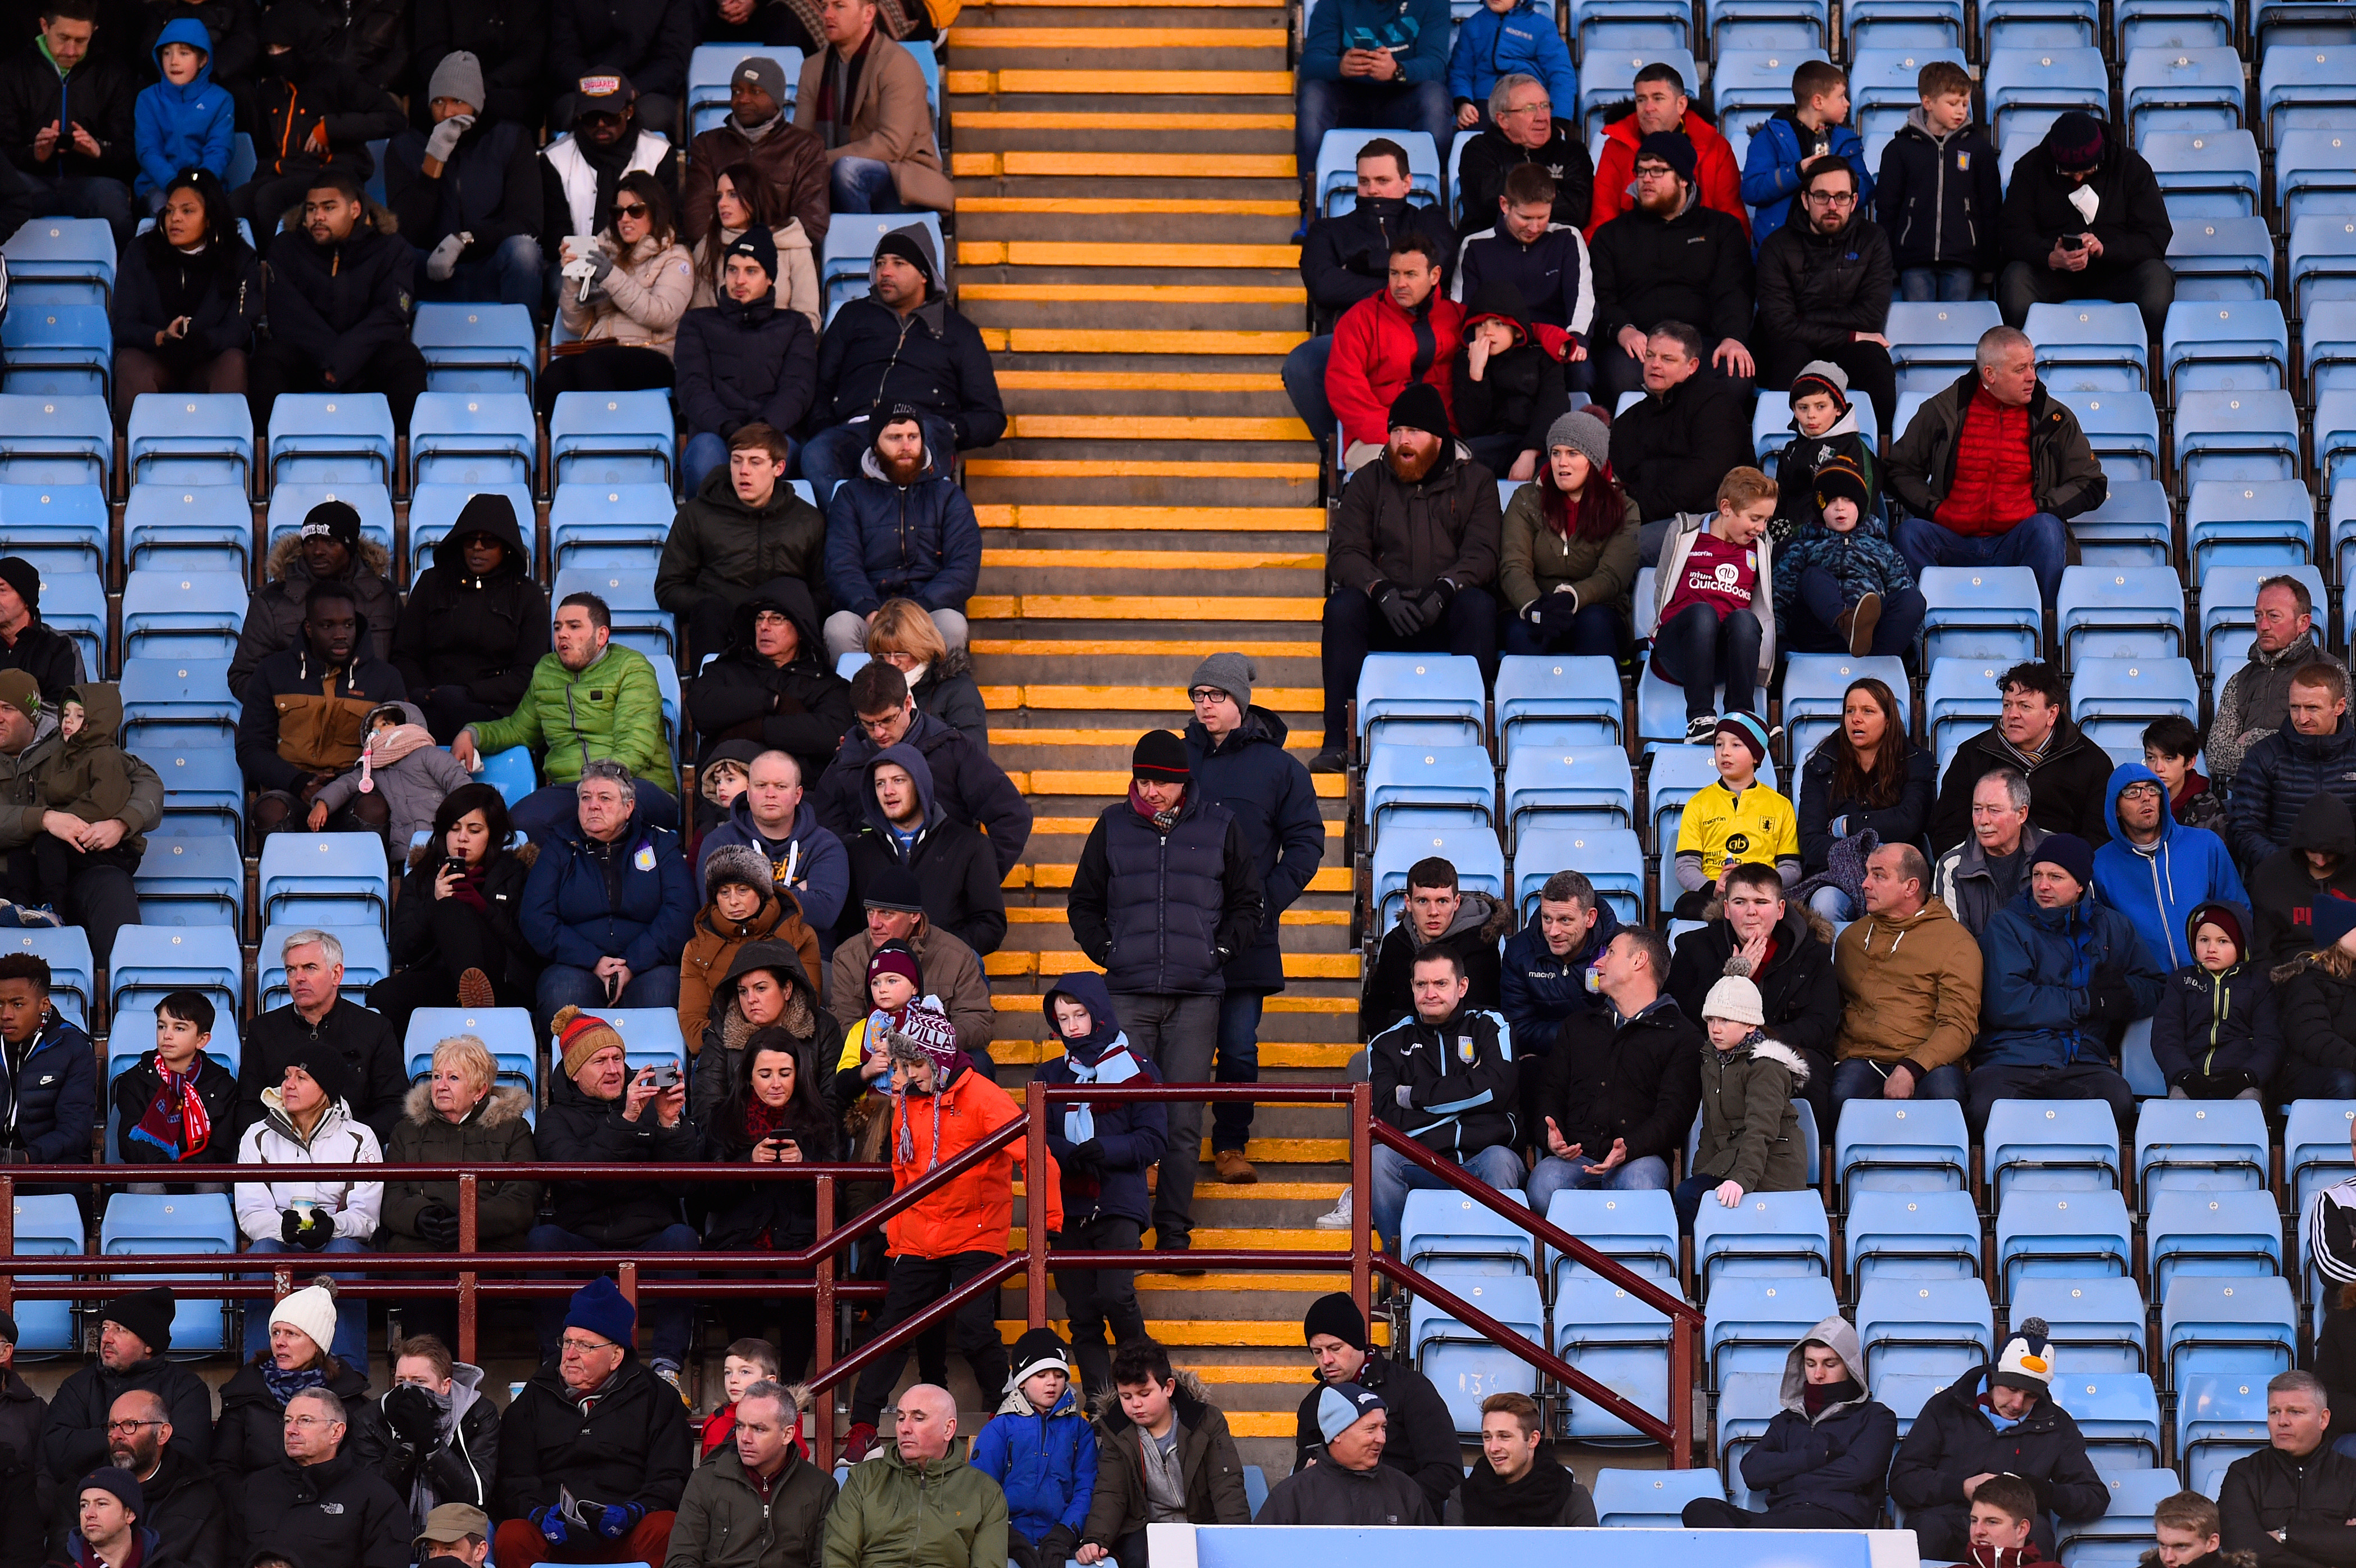 Aston Villa fans plan walk-out protest